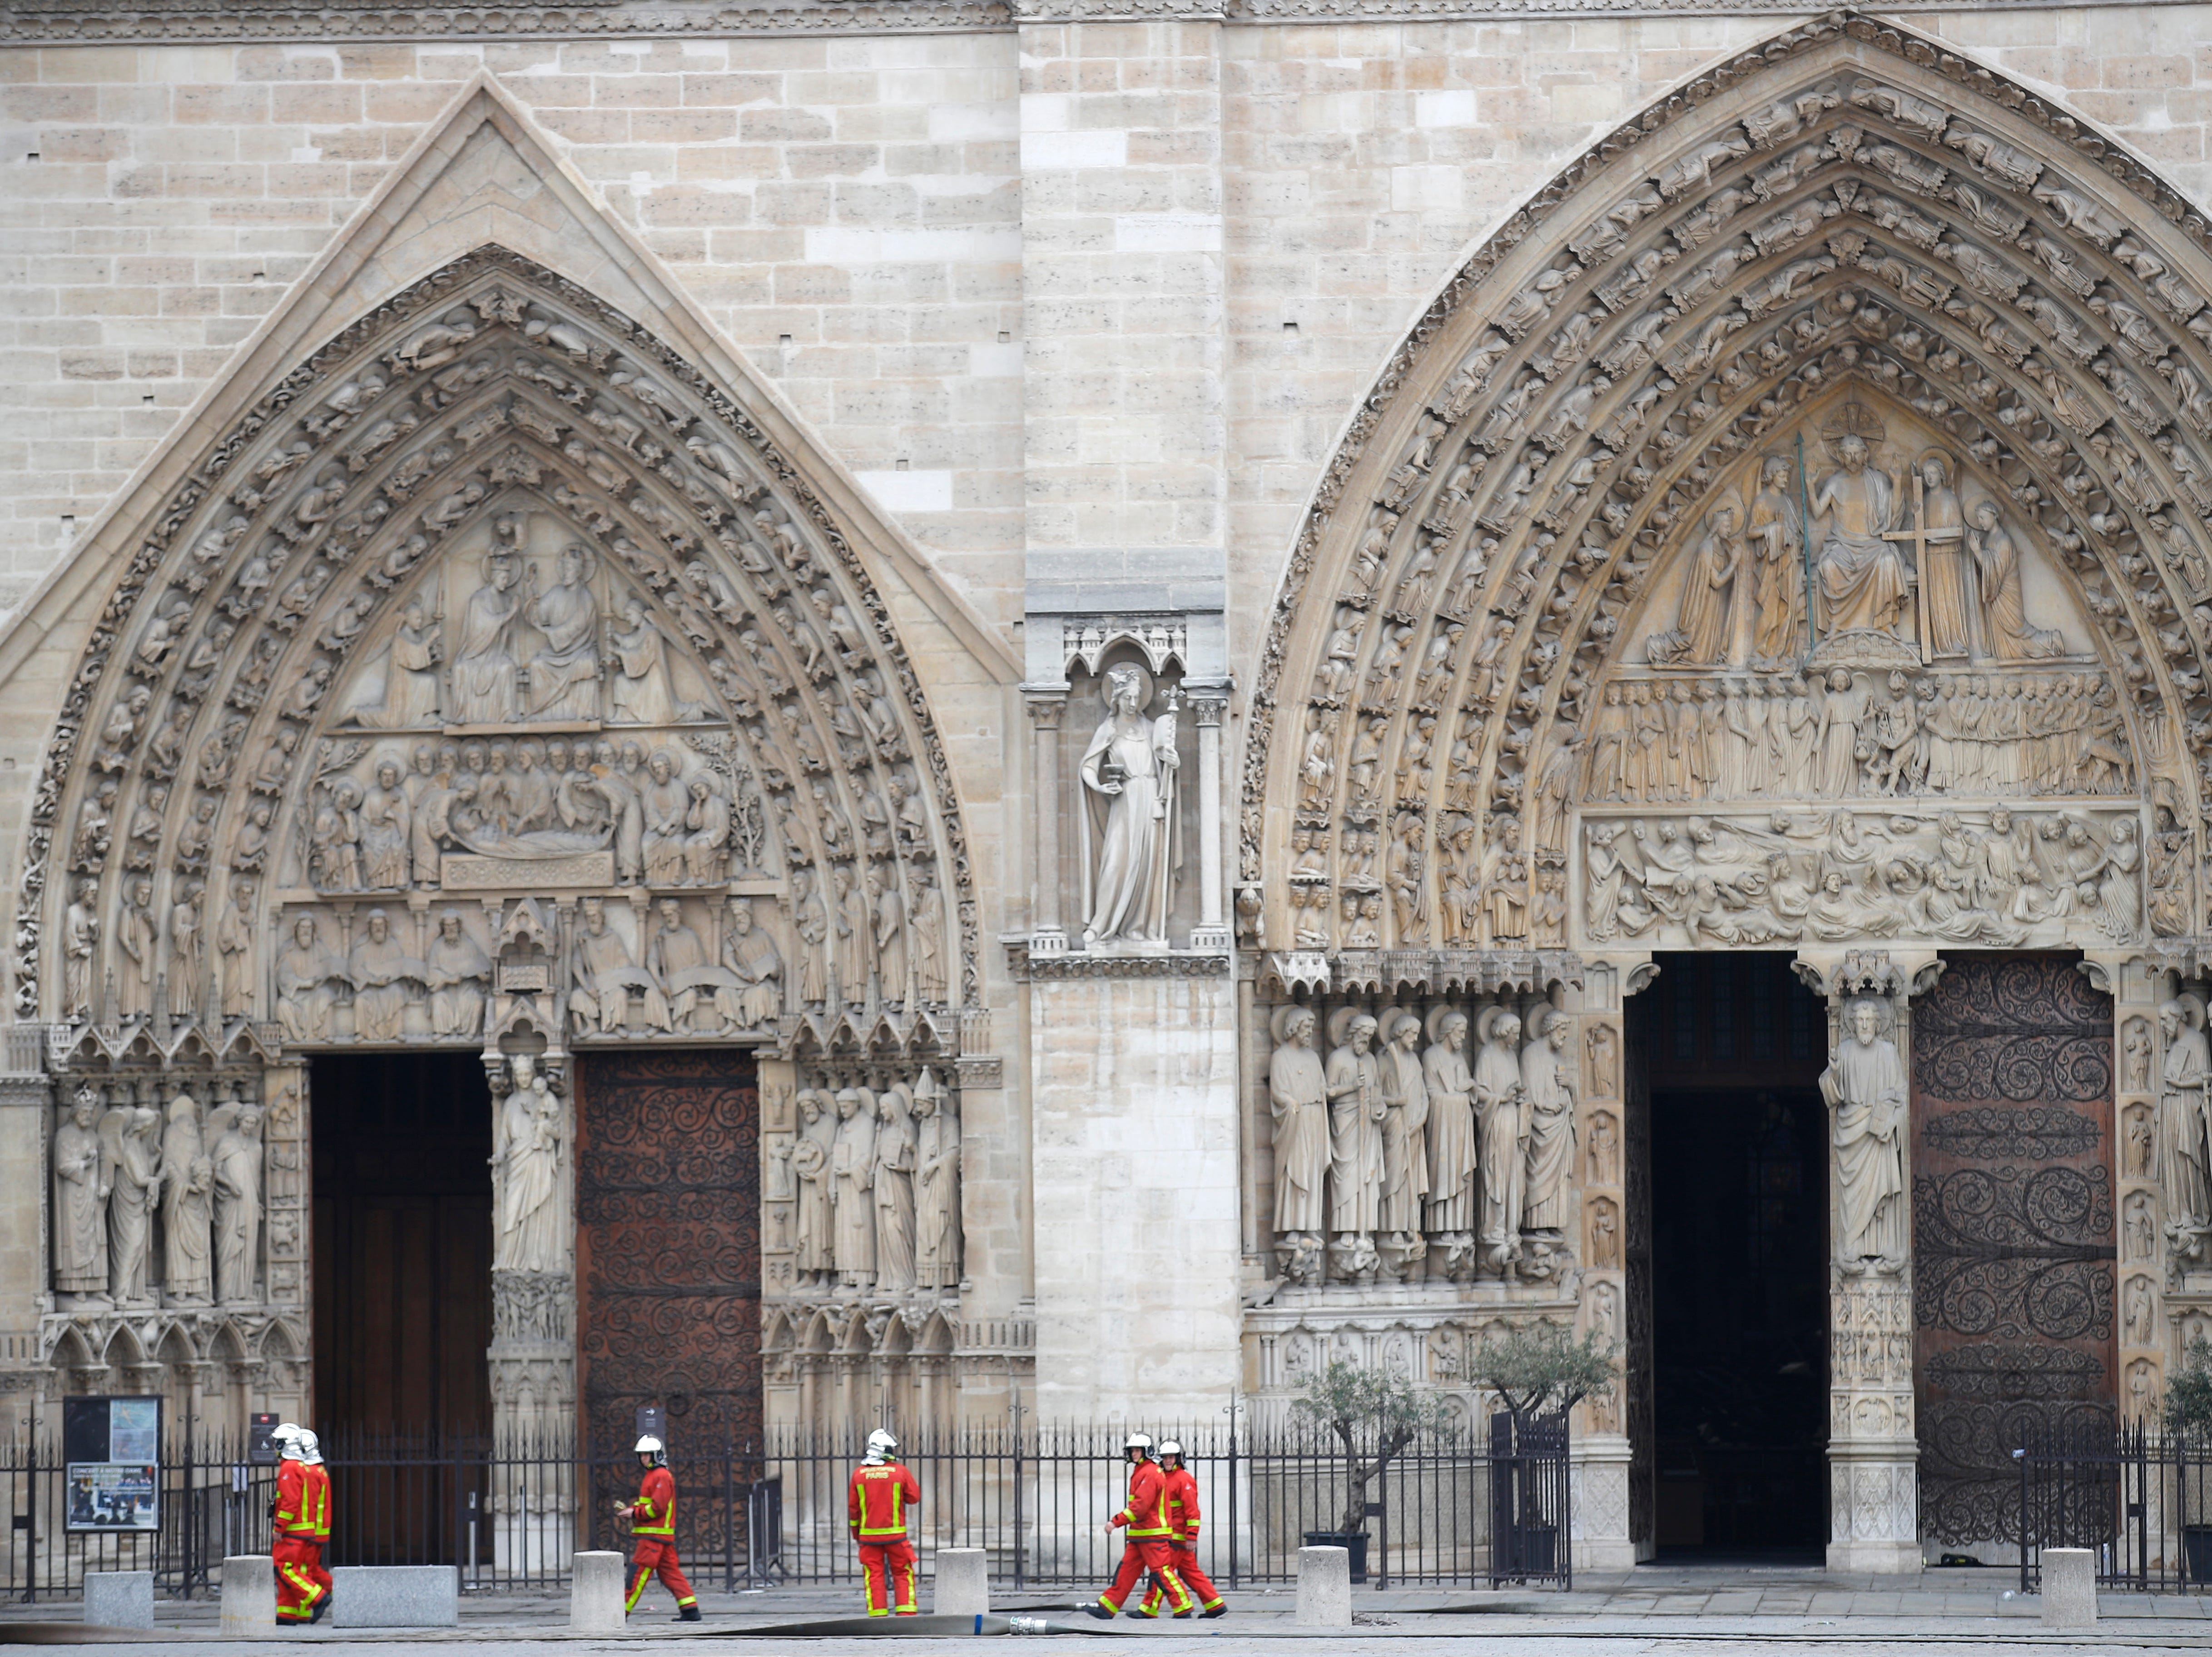 Firefighters walk outside the main entrances of Notre Dame cathedral Tuesday April 16, 2019 in Paris. Firefighters declared success Tuesday in a more than 12-hour battle to extinguish an inferno engulfing Paris' iconic Notre Dame cathedral that claimed its spire and roof, but spared its bell towers. (AP Photo/Francois Mori)